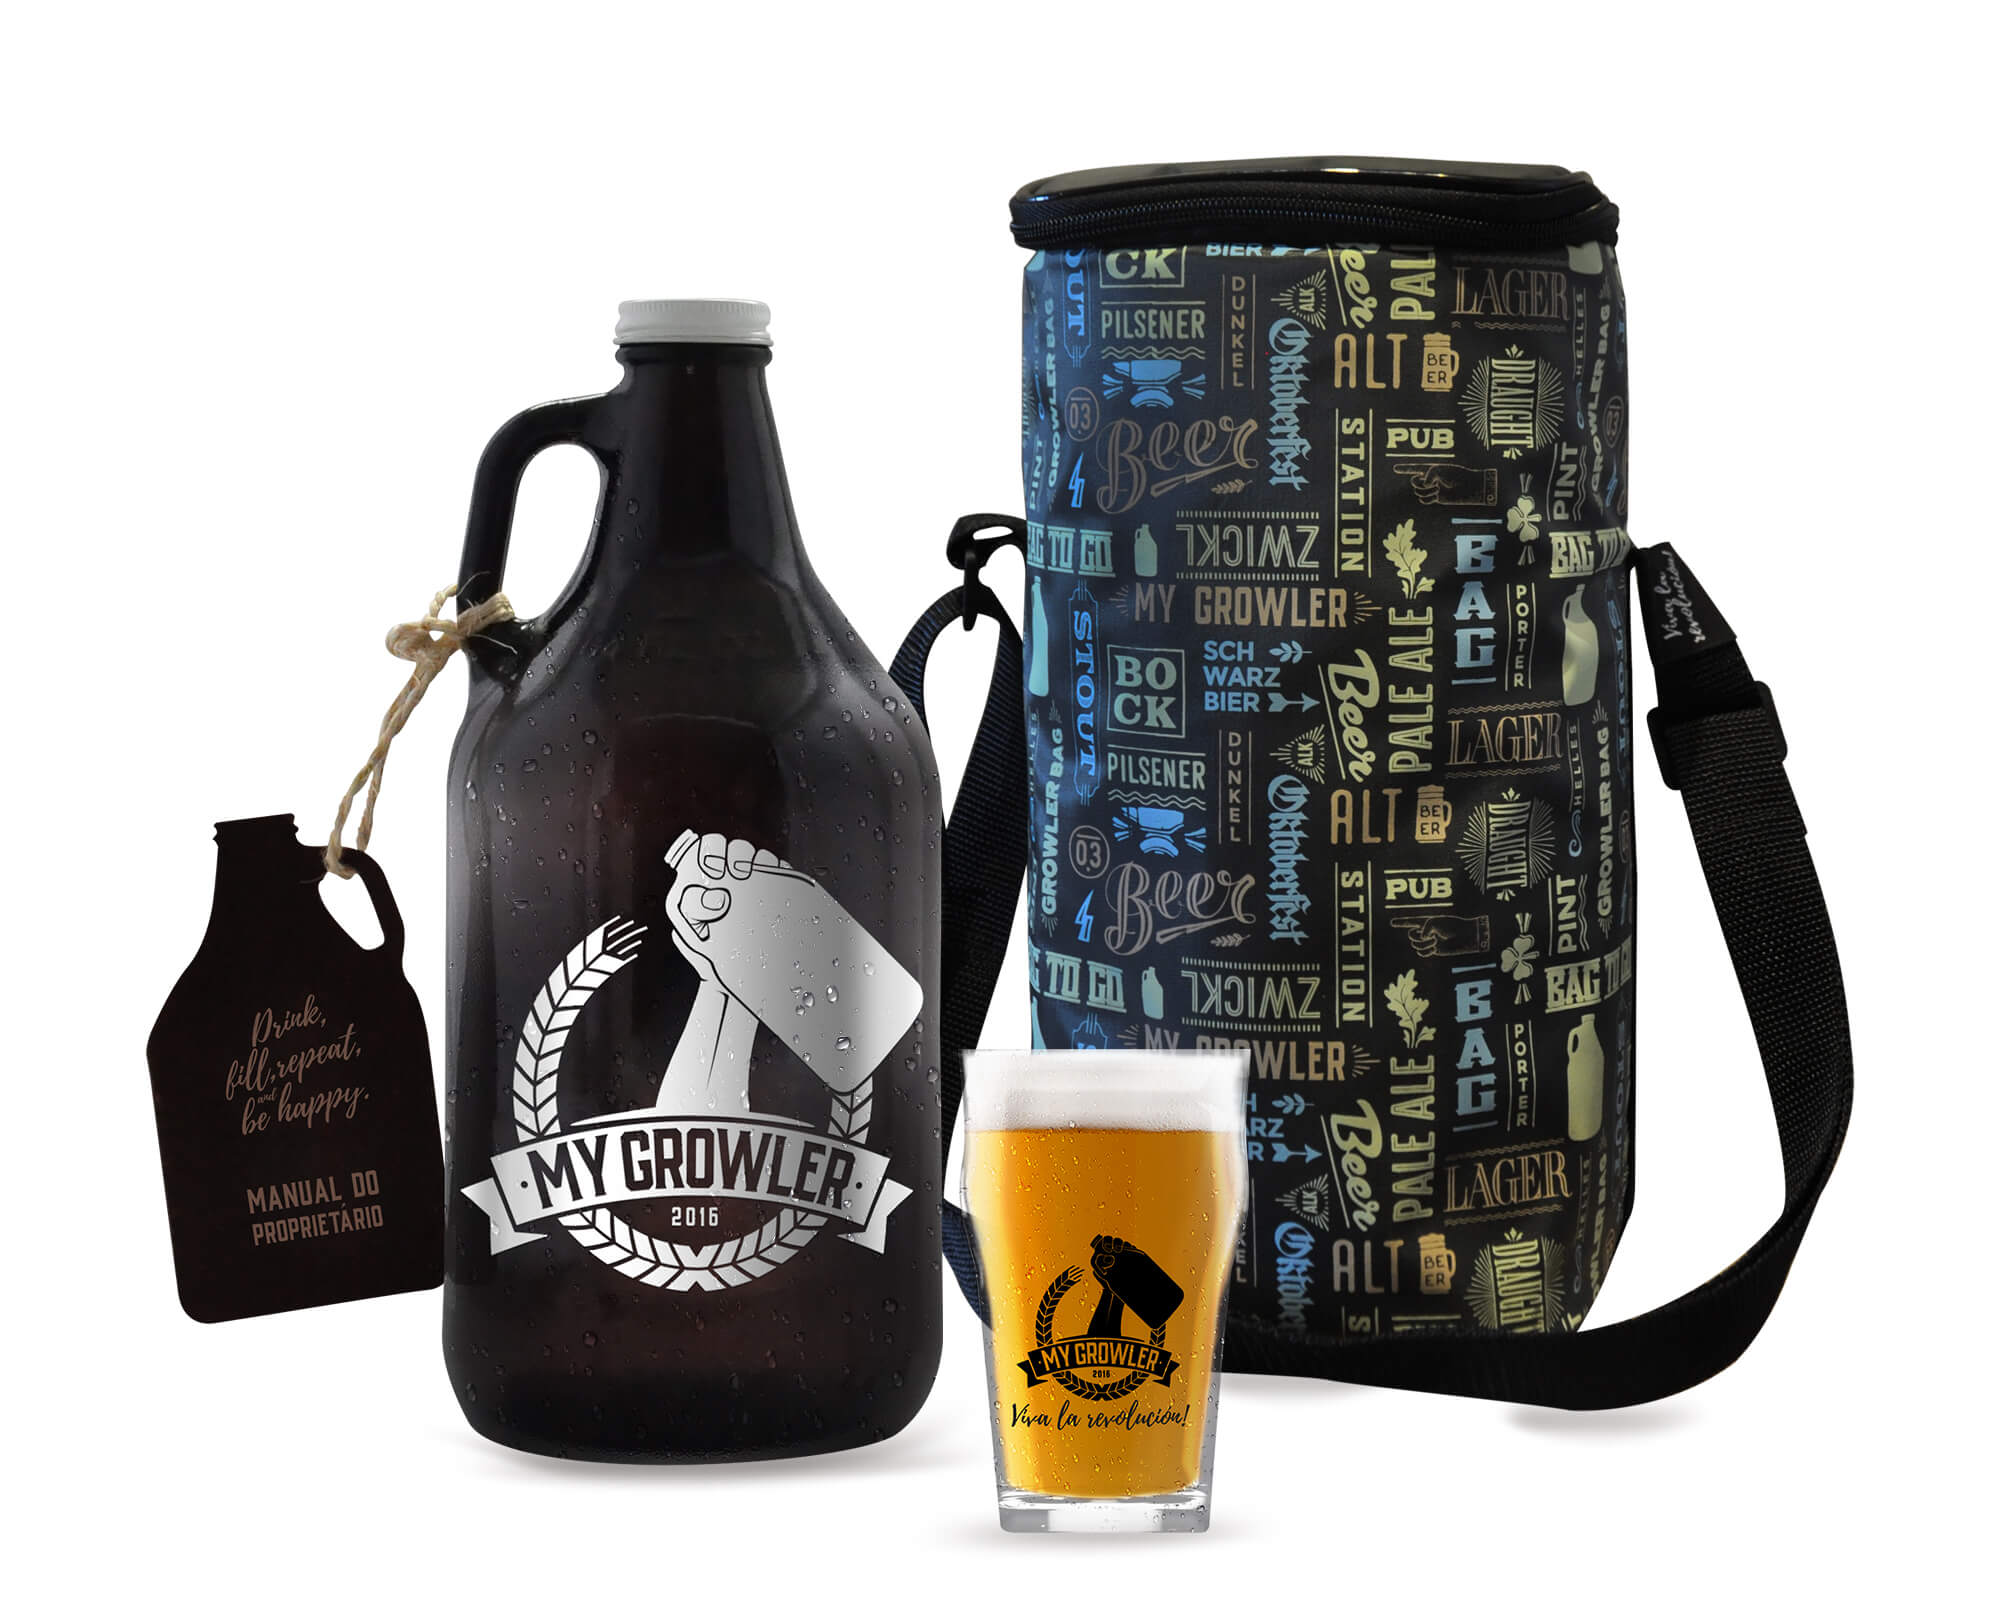 Kit My Growler #4 - Growler Americano + Growler Bag To Go para 1 growler + Copo Pint 300ml